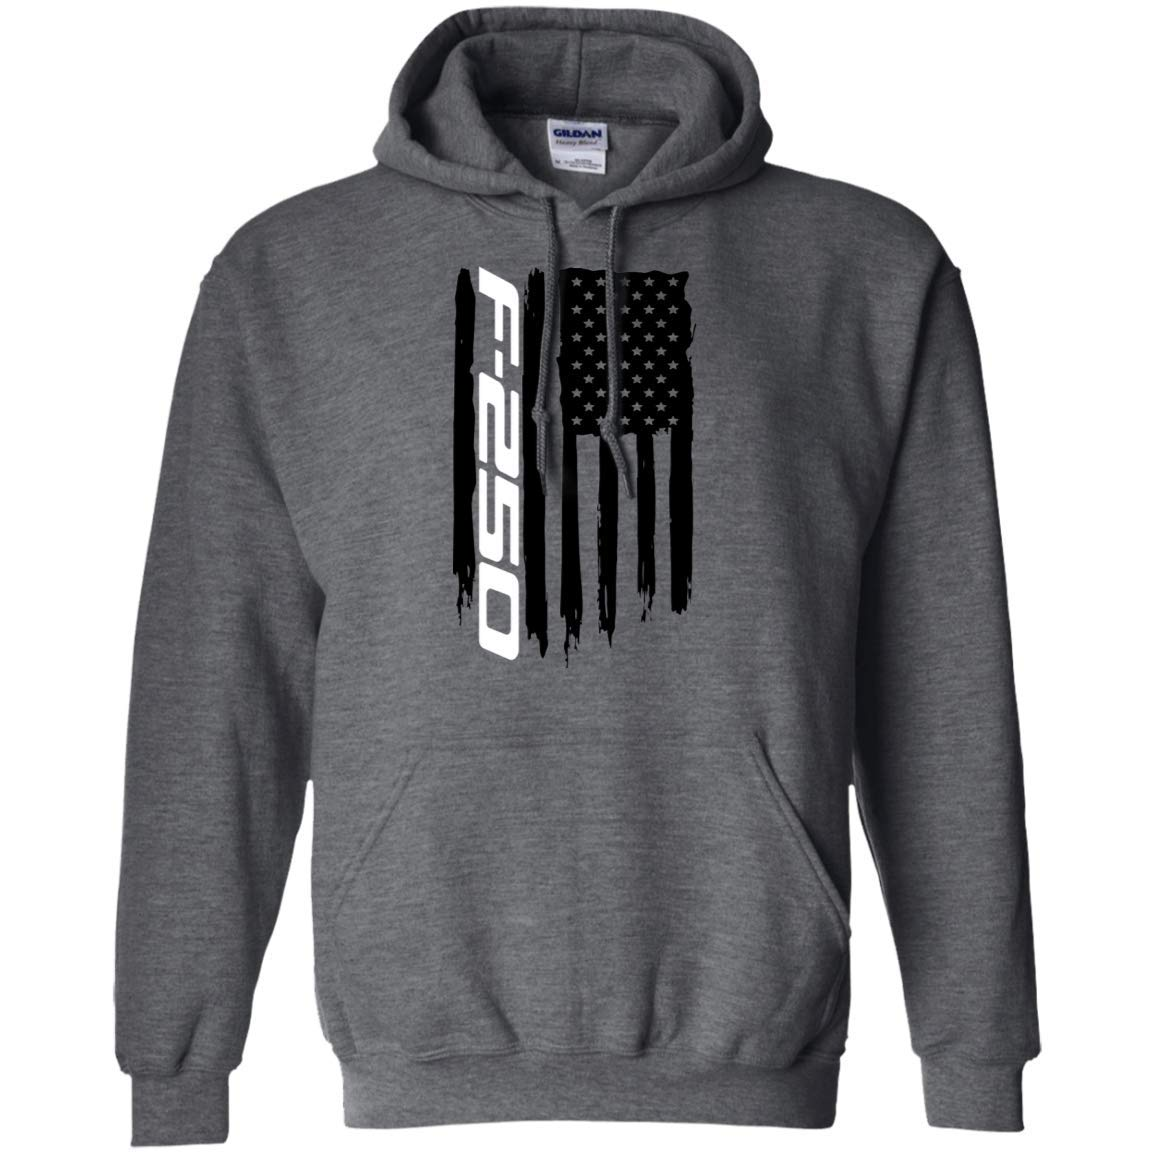 Wheel Spin Addict Mens F-250 F250 Truck American Flag Hoodie